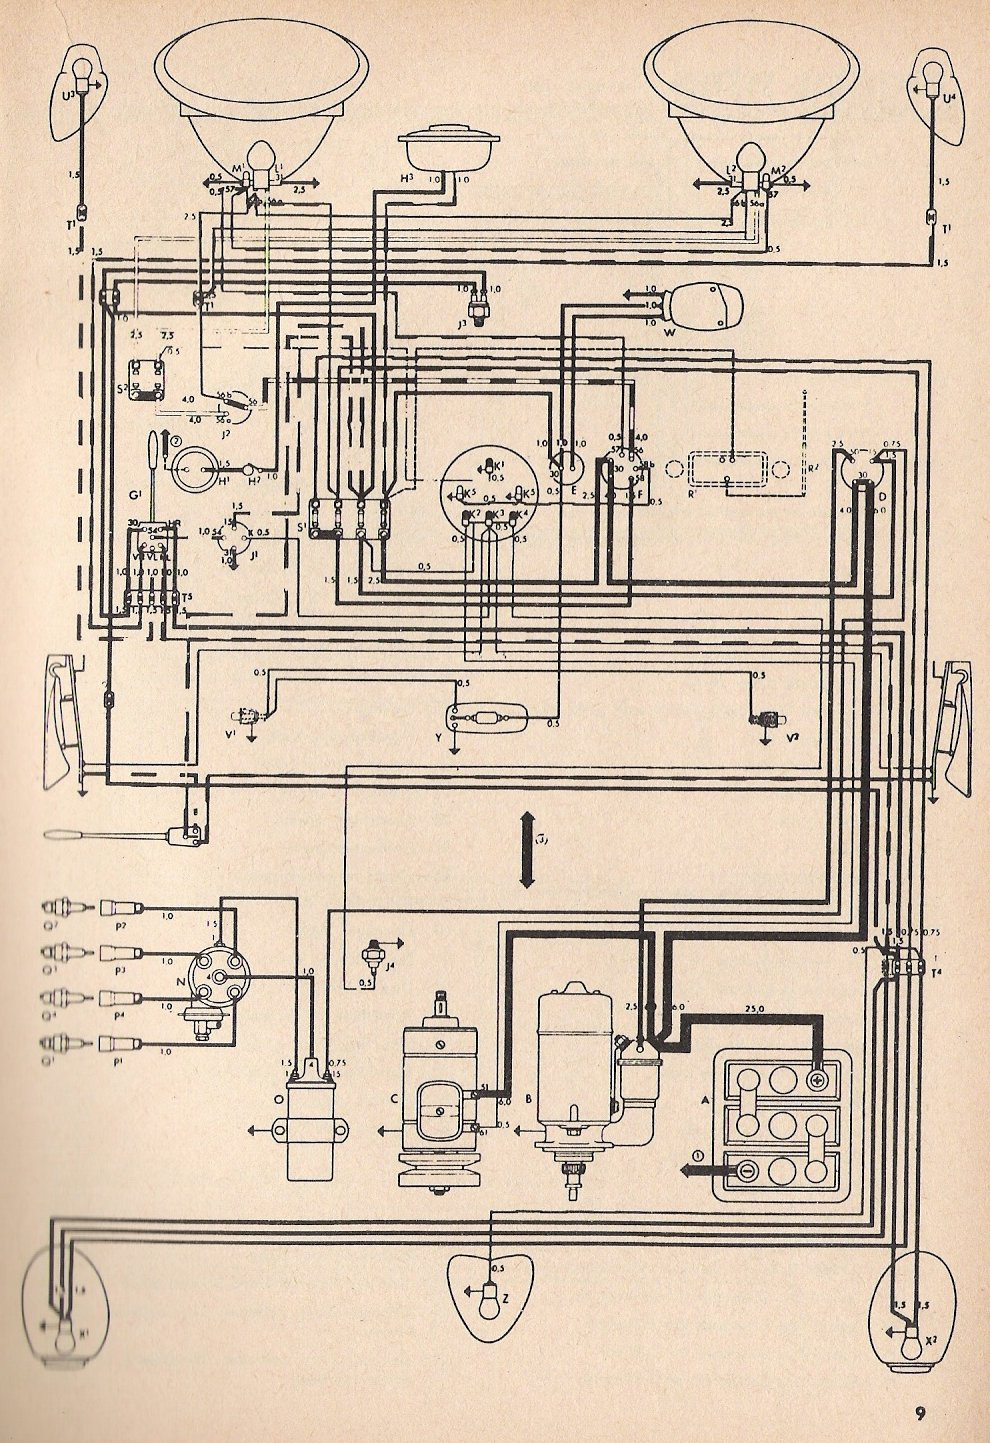 Type 1 Wiring Diagrams Read Pdf Free Online Image Schematic Diagram